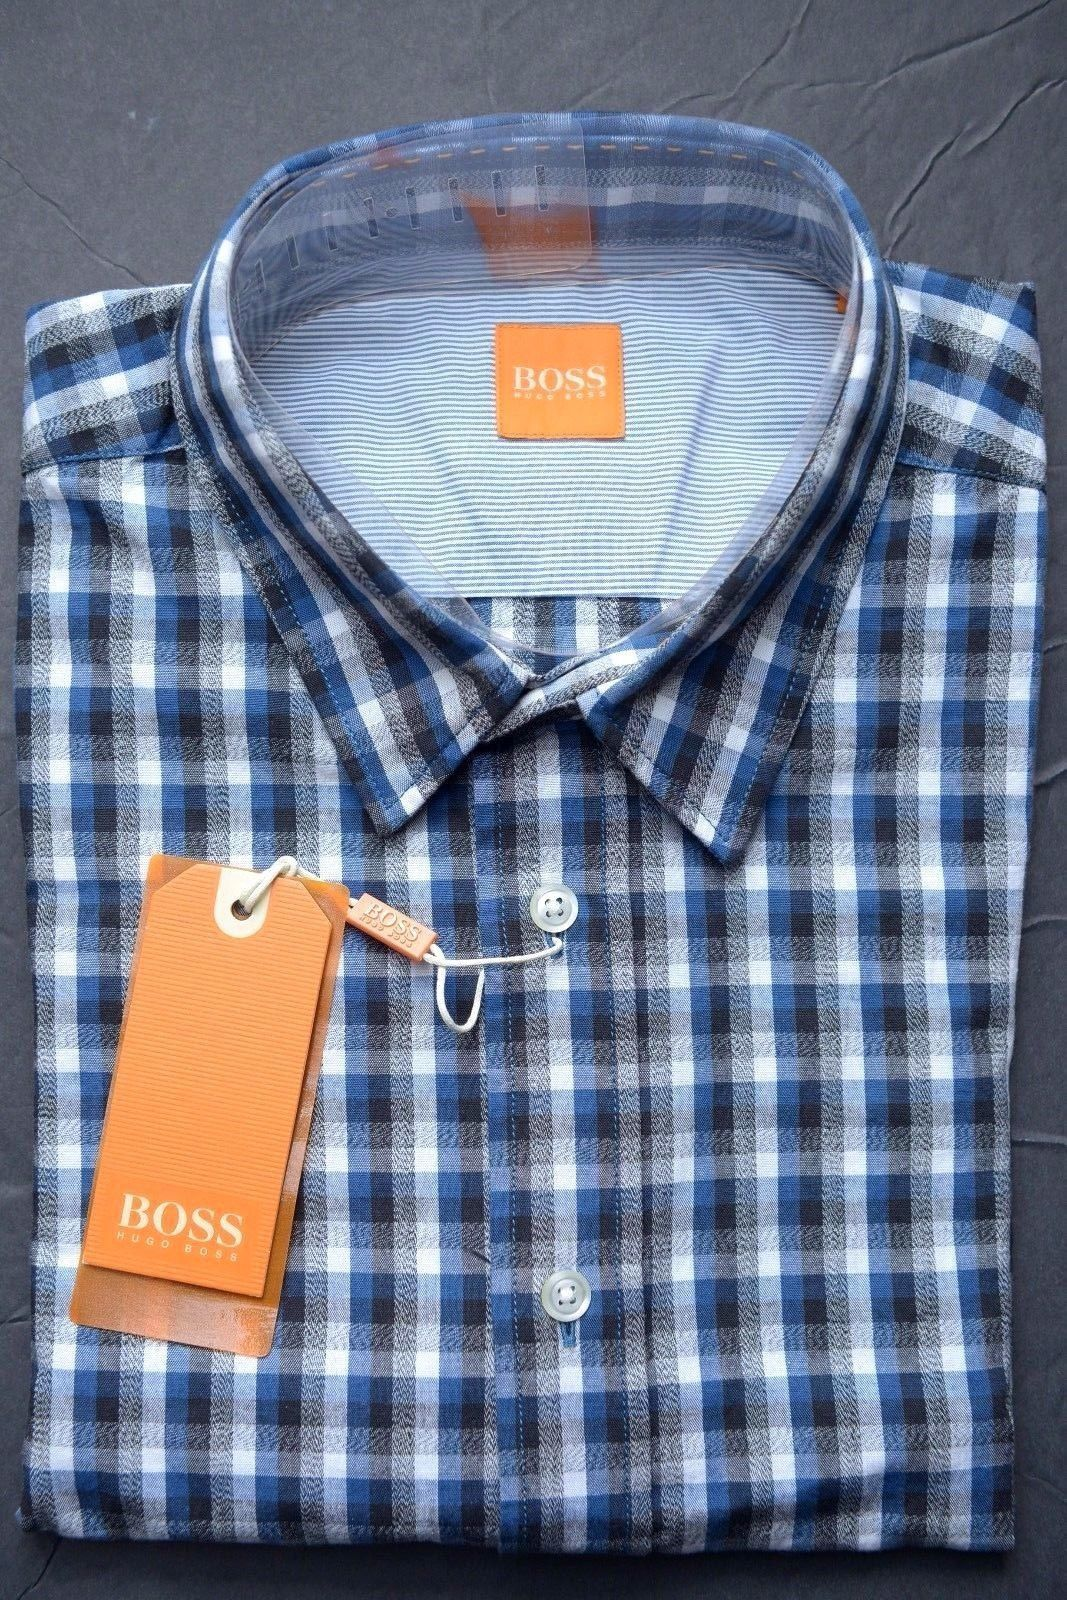 NWT HUGO BOSS ORANGE MEN'S LONG SLEEVE GRAY/BLUE PLAIDS COTTON CASUAL SHIRT  L